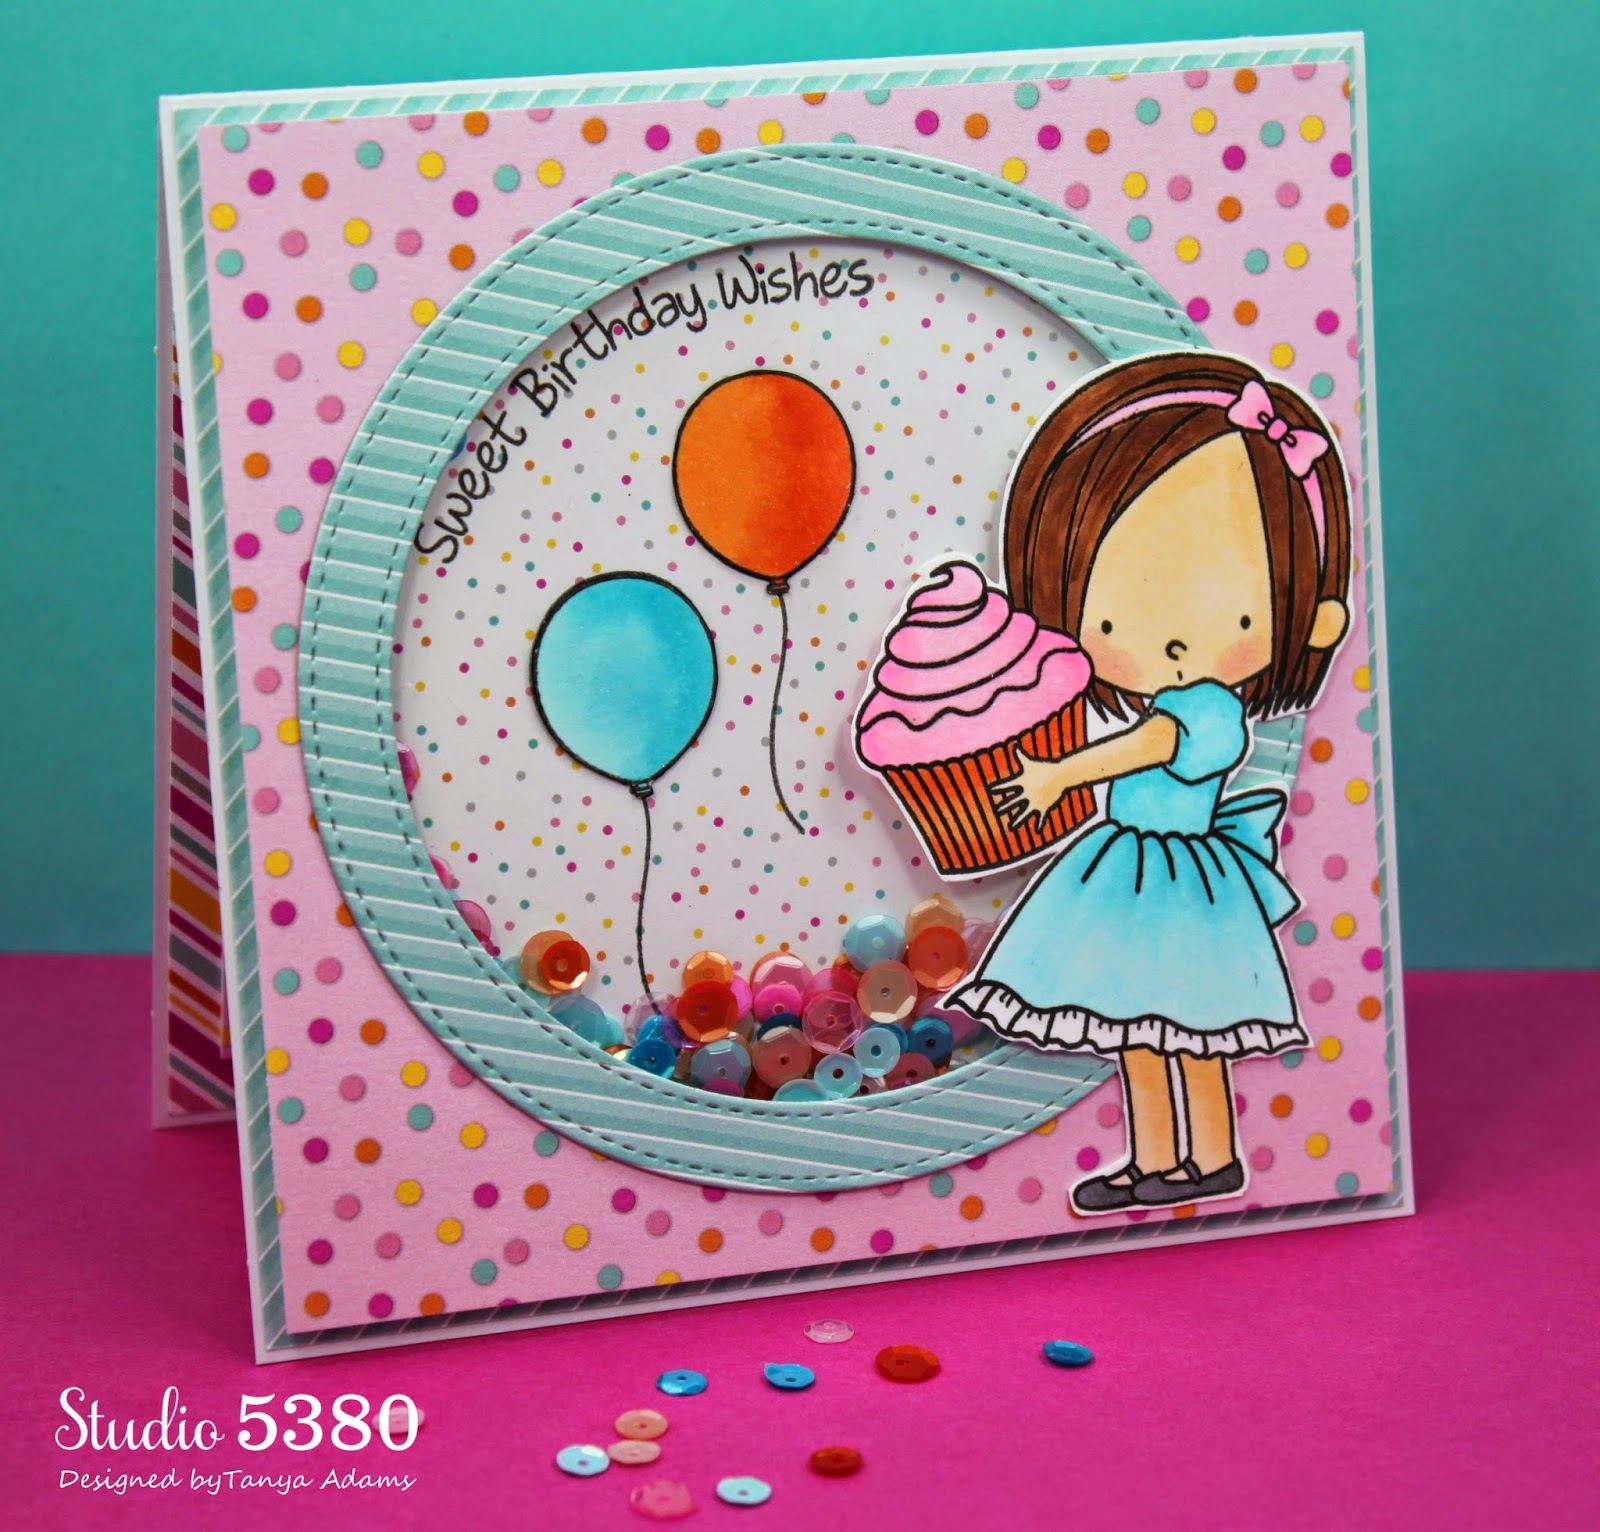 Studio 5380 Sweet Birthday Wishes For Hannah